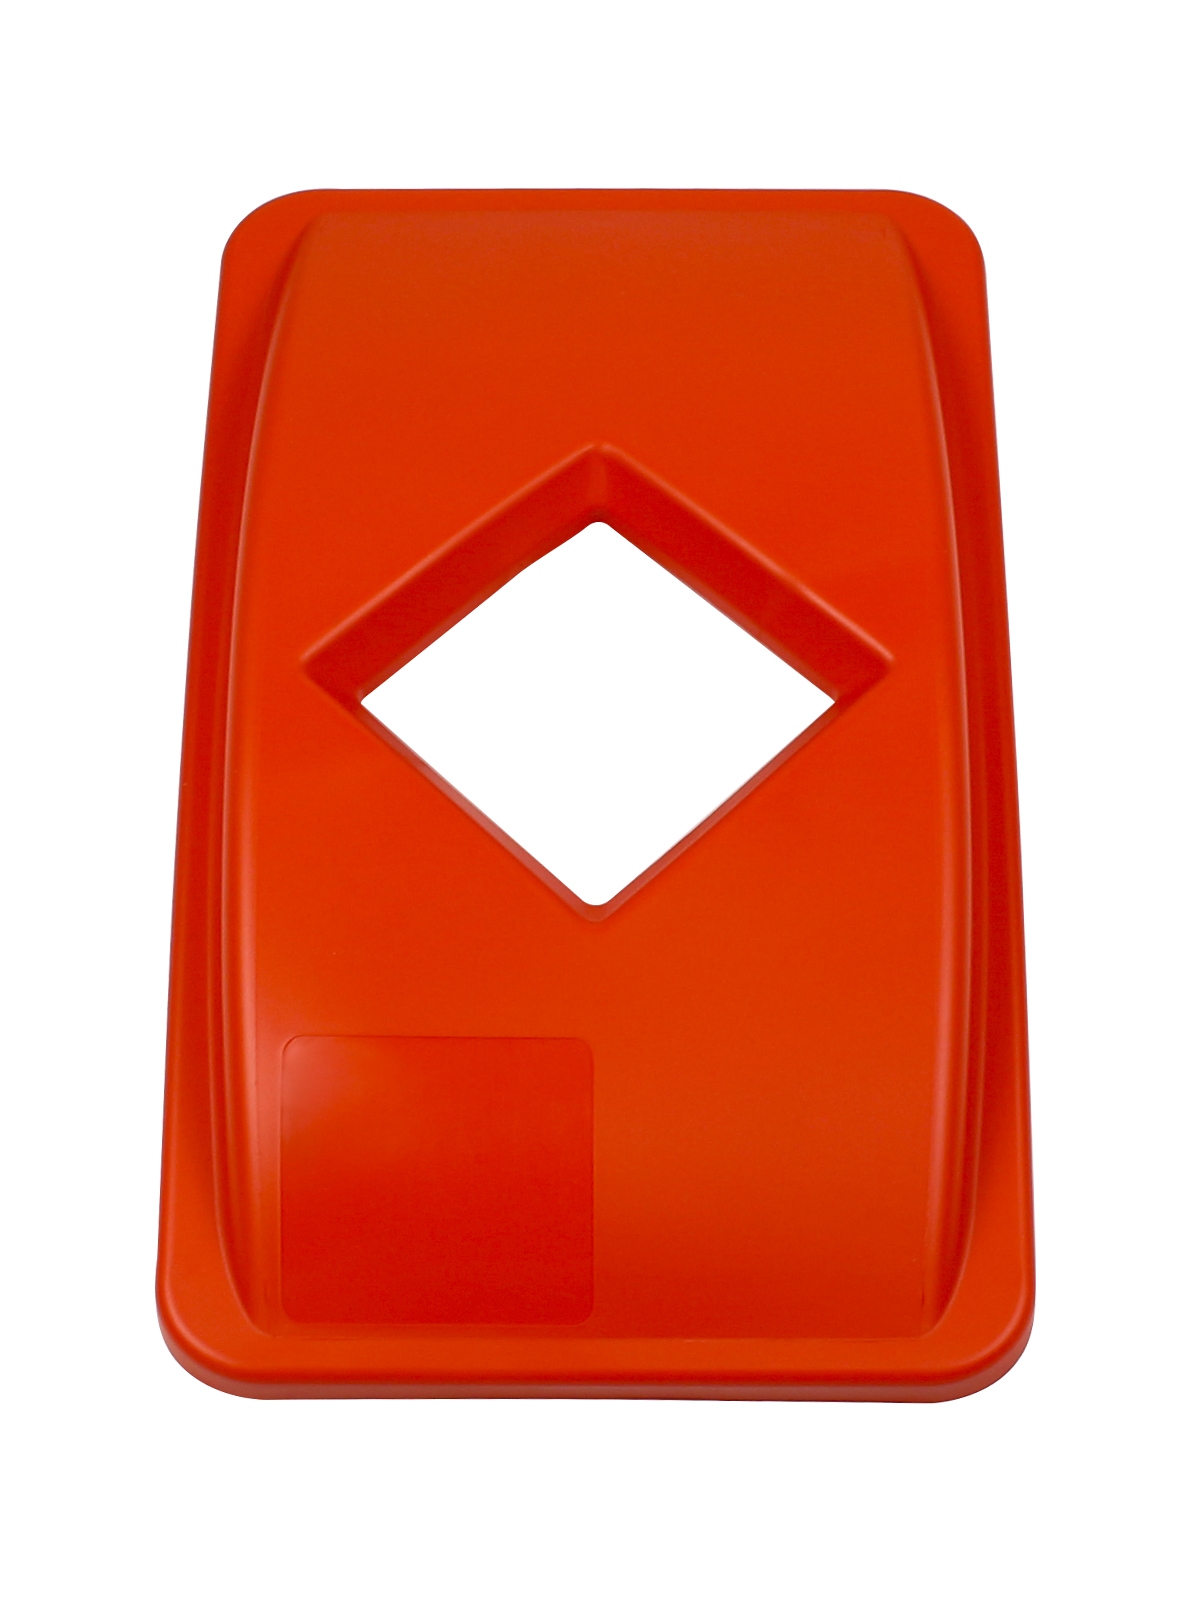 WASTE WATCHER - Single - Lid - Diamond - Orange